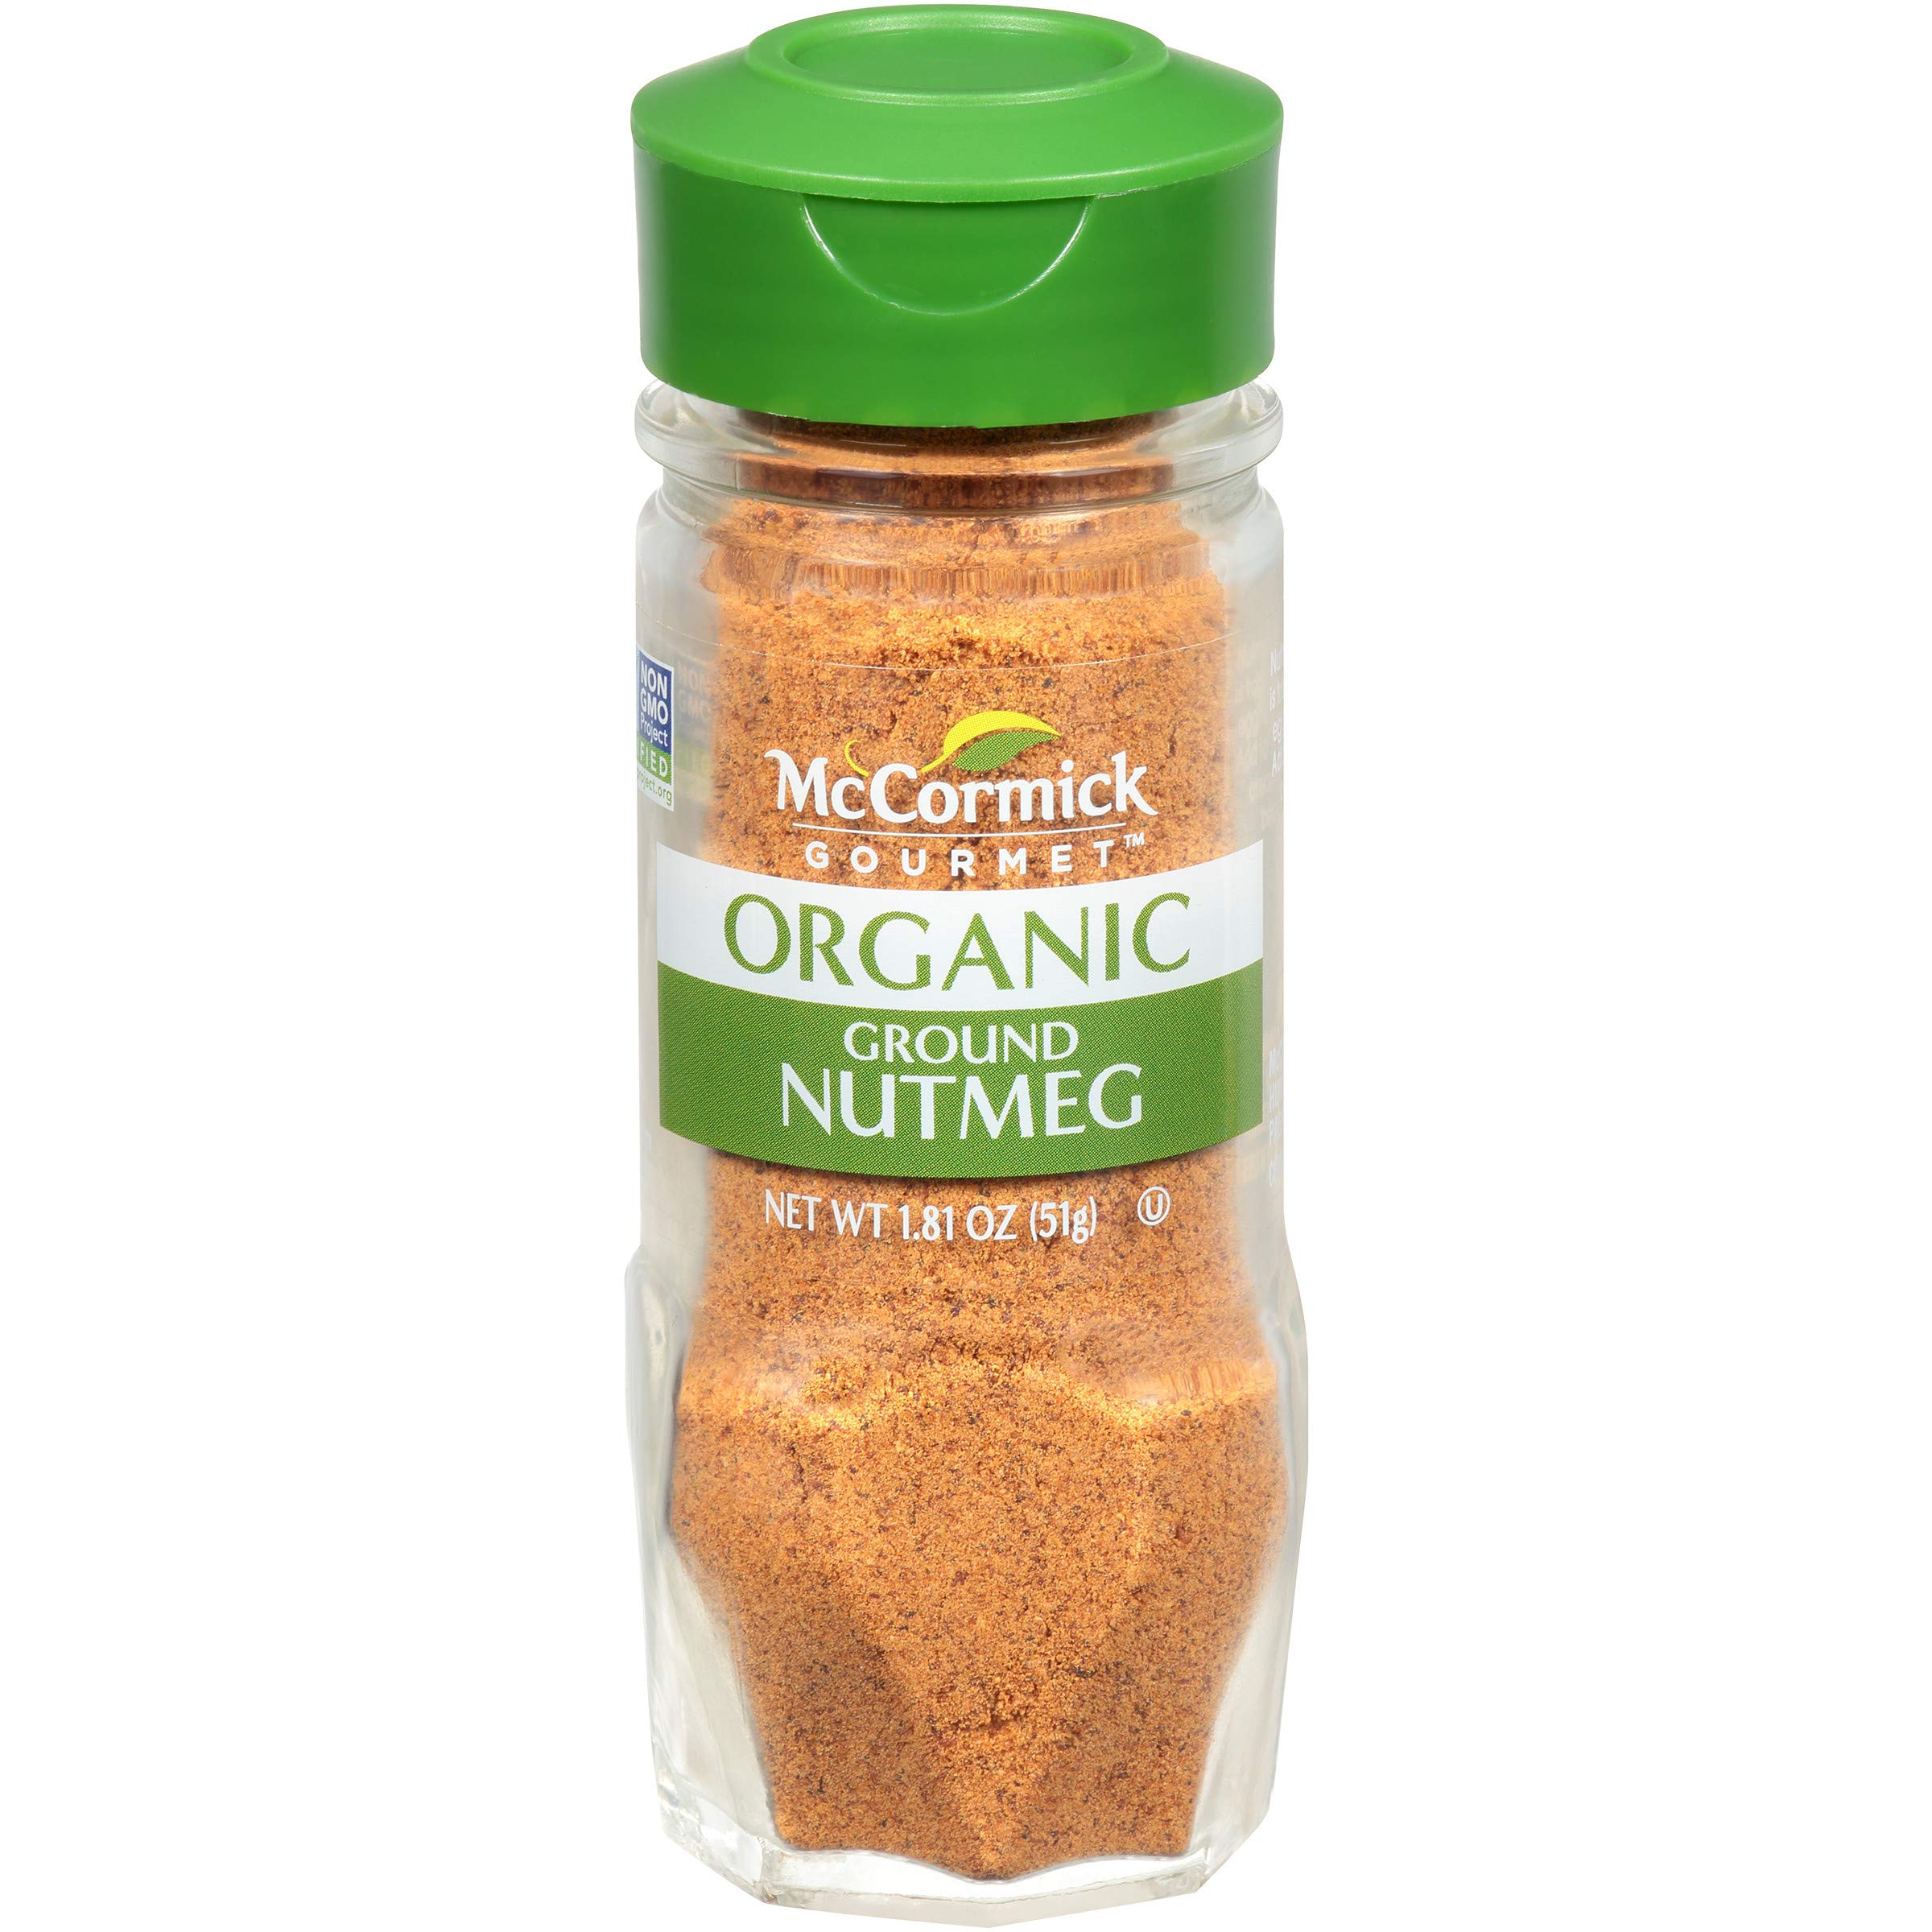 McCormick Gourmet, Ground Nutmeg, 1.81 oz